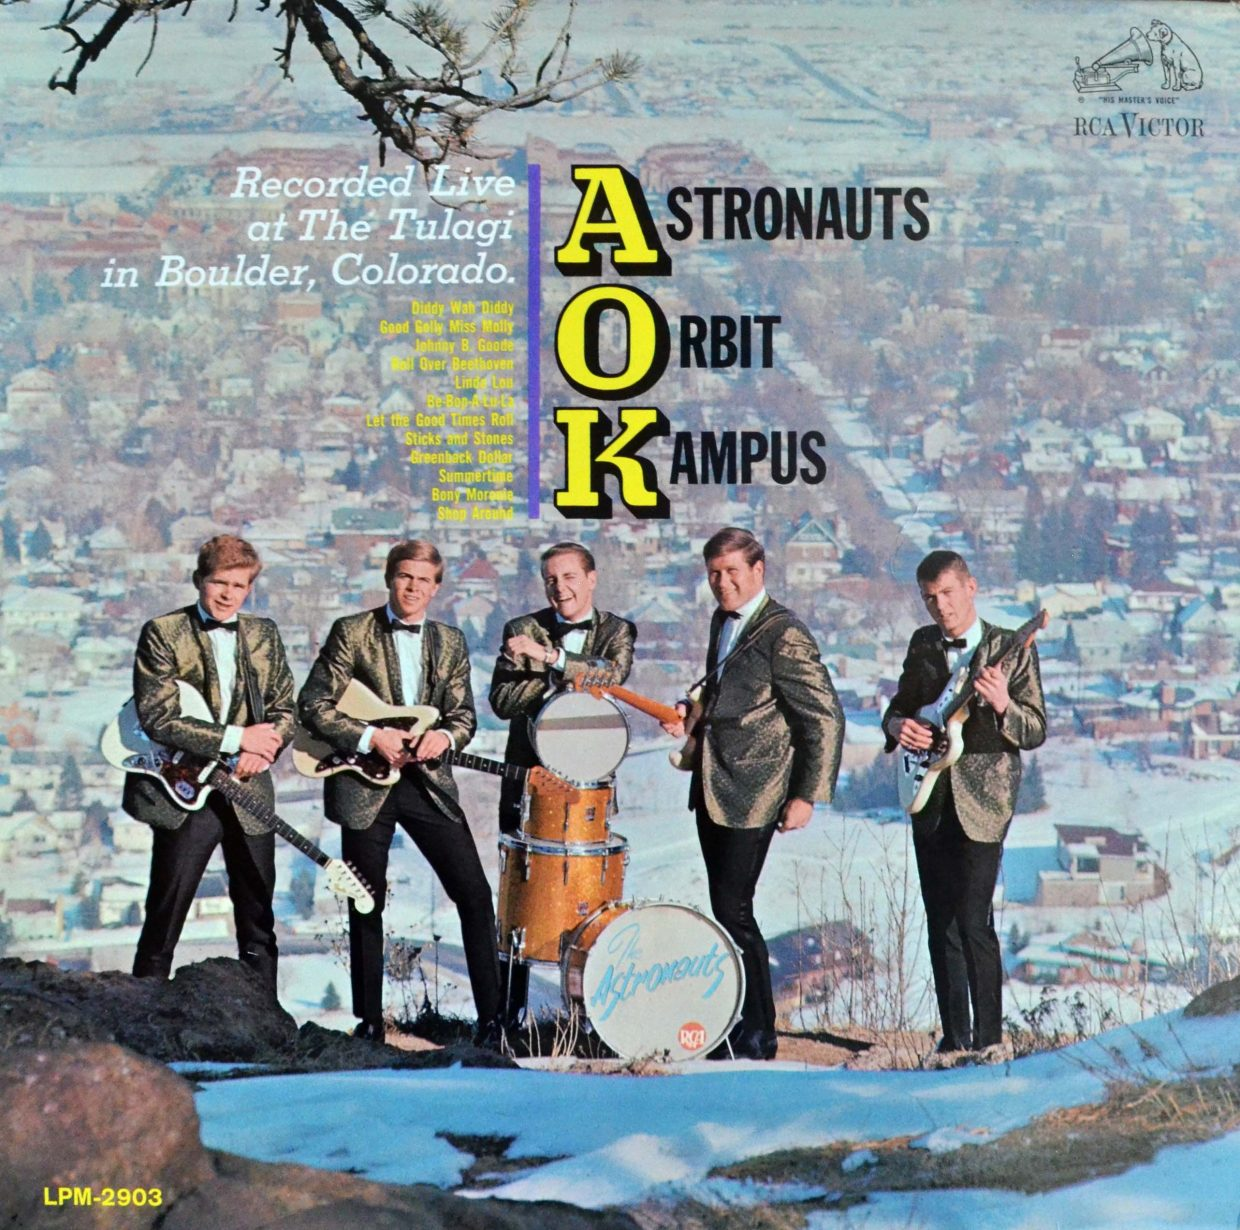 """In 1964, the same year the Beatles released """"A hard Day's Night"""" in the U.S., a Boulder, Colorado, band called the Astronauts, as adept at rock'n'roll as it was at California surf music, released an album called AOK - Astronauts Orbit Kampus - recorded live at the famed club known as Tulagi."""